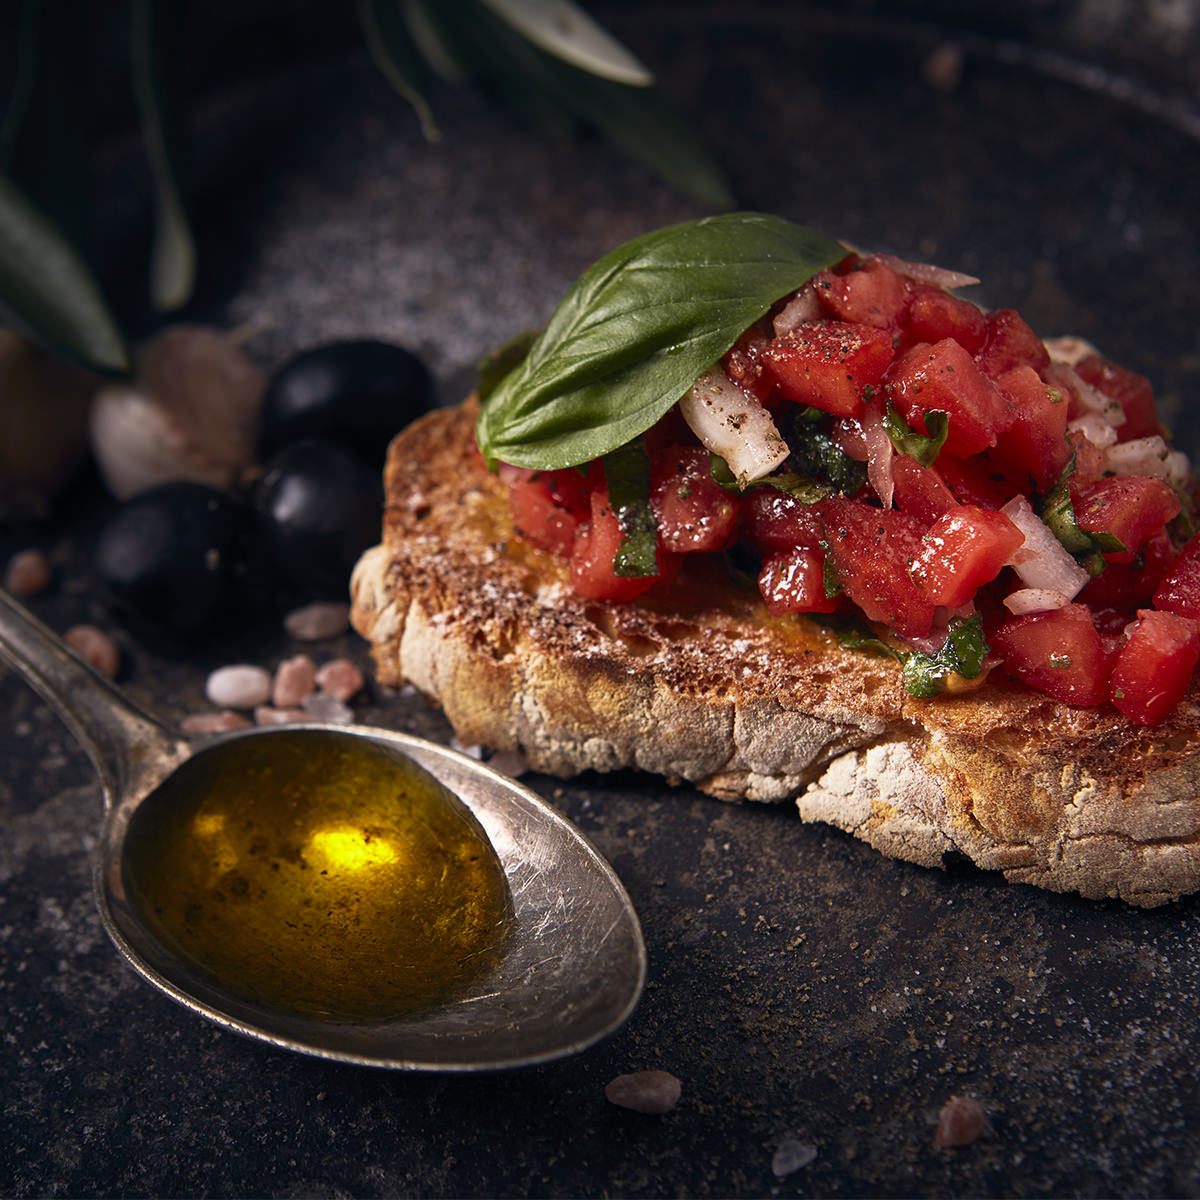 Food photography of Bruschetta with Olive Oil